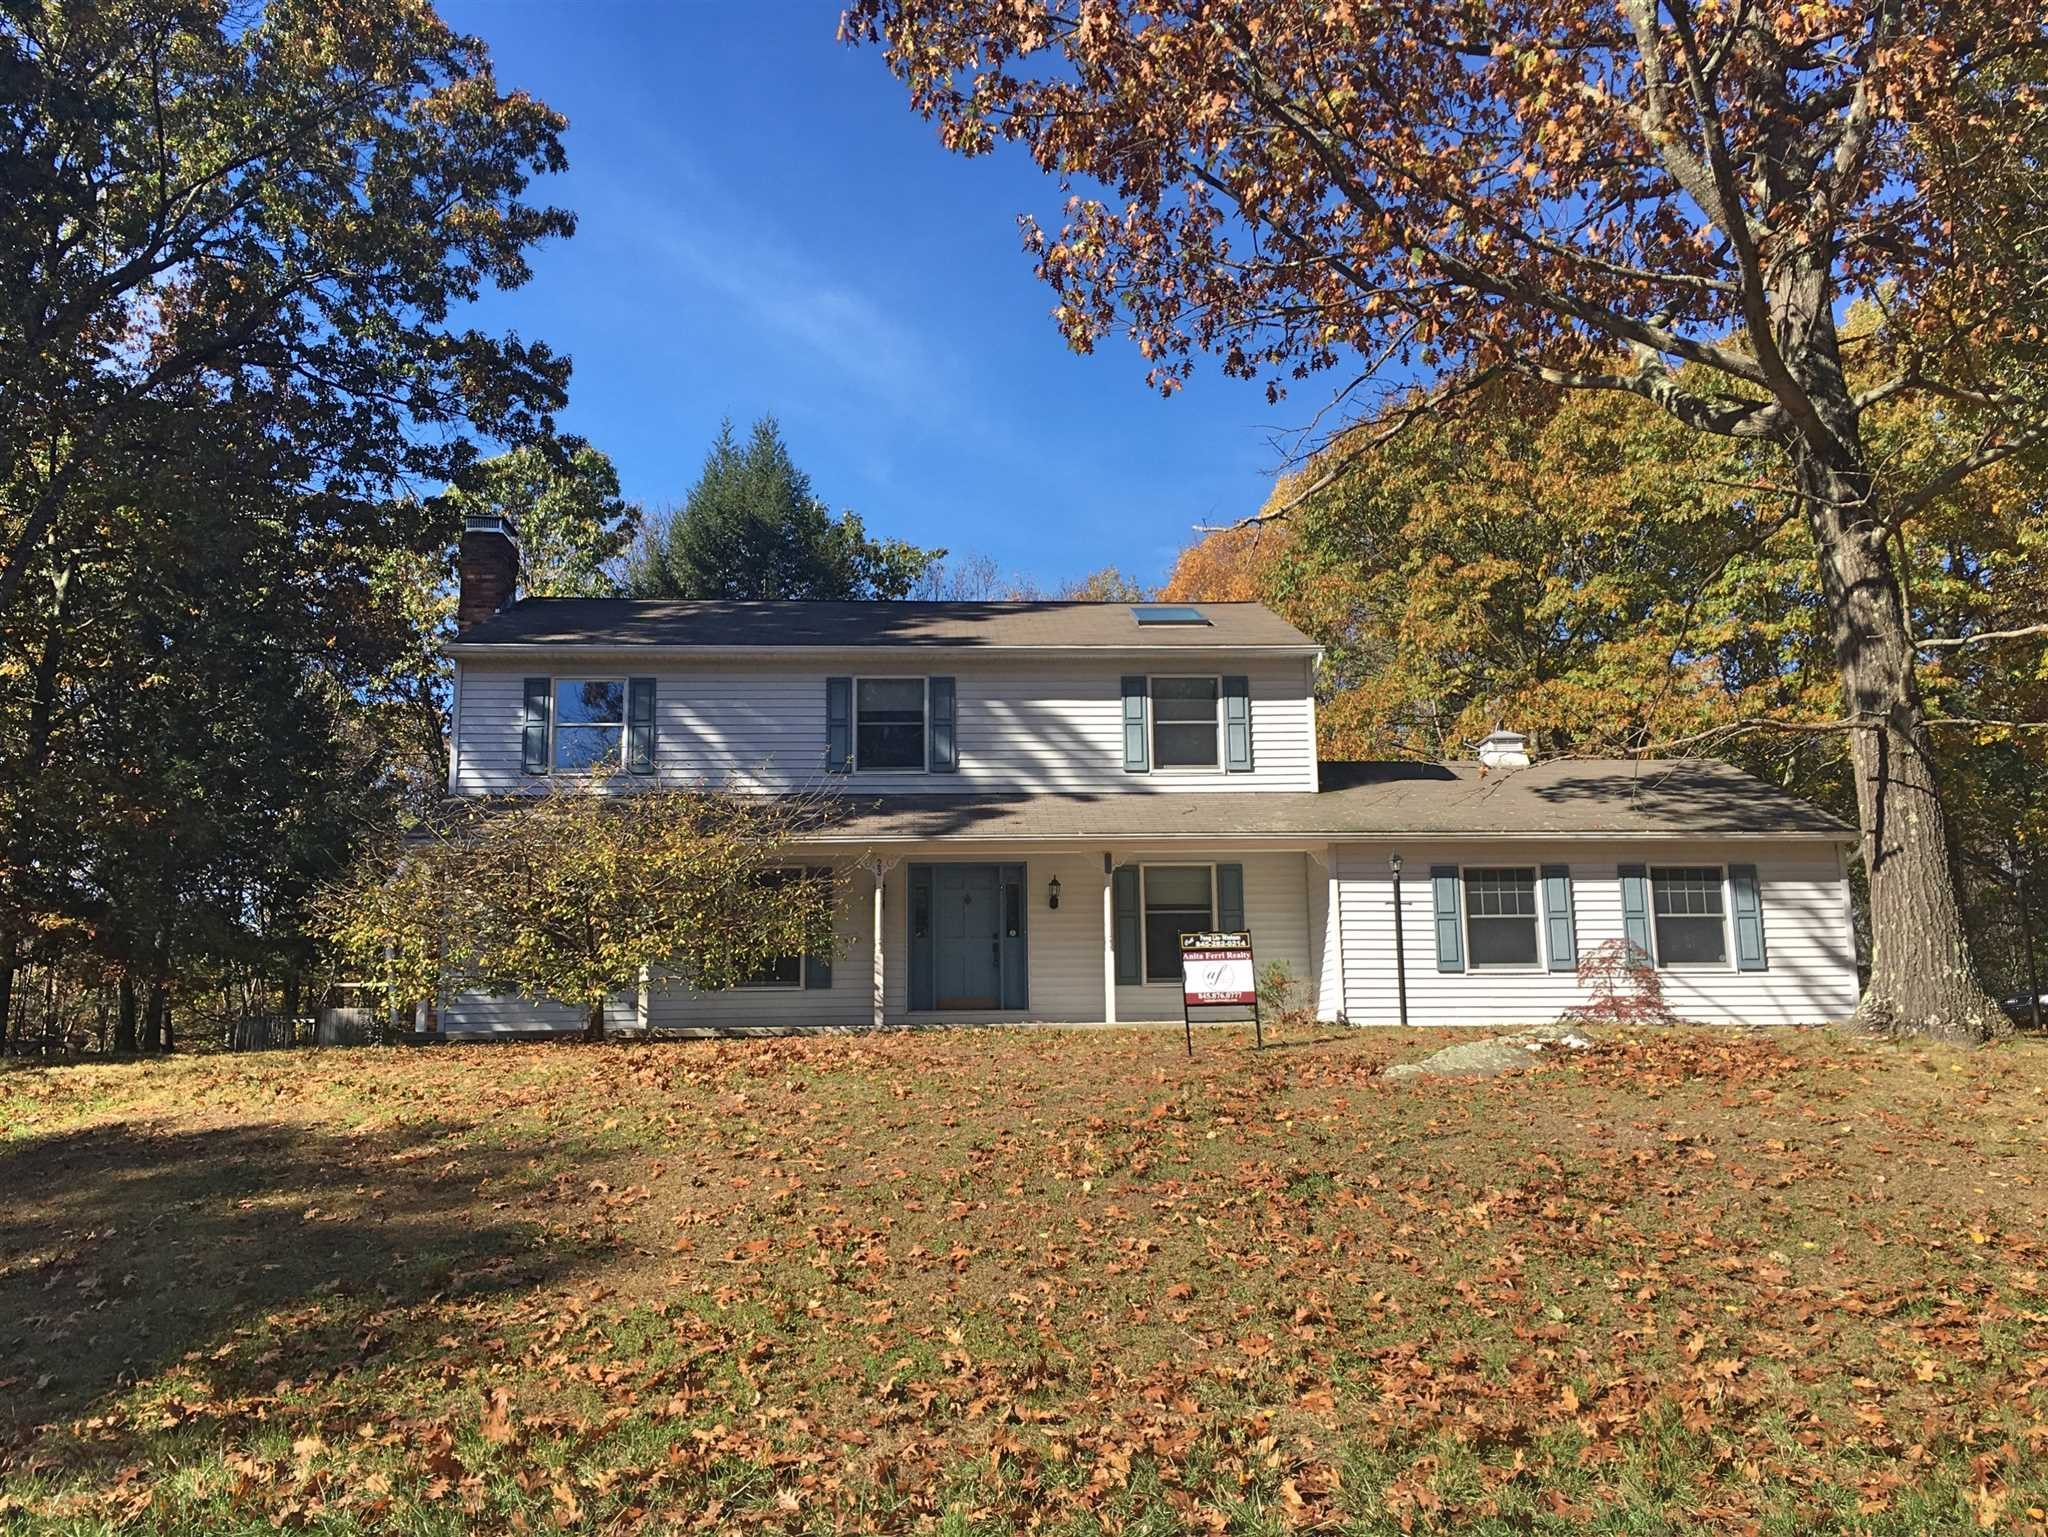 Single Family Home for Sale at 23 WINSTON Drive 23 WINSTON Drive Rhinebeck, New York 12572 United States